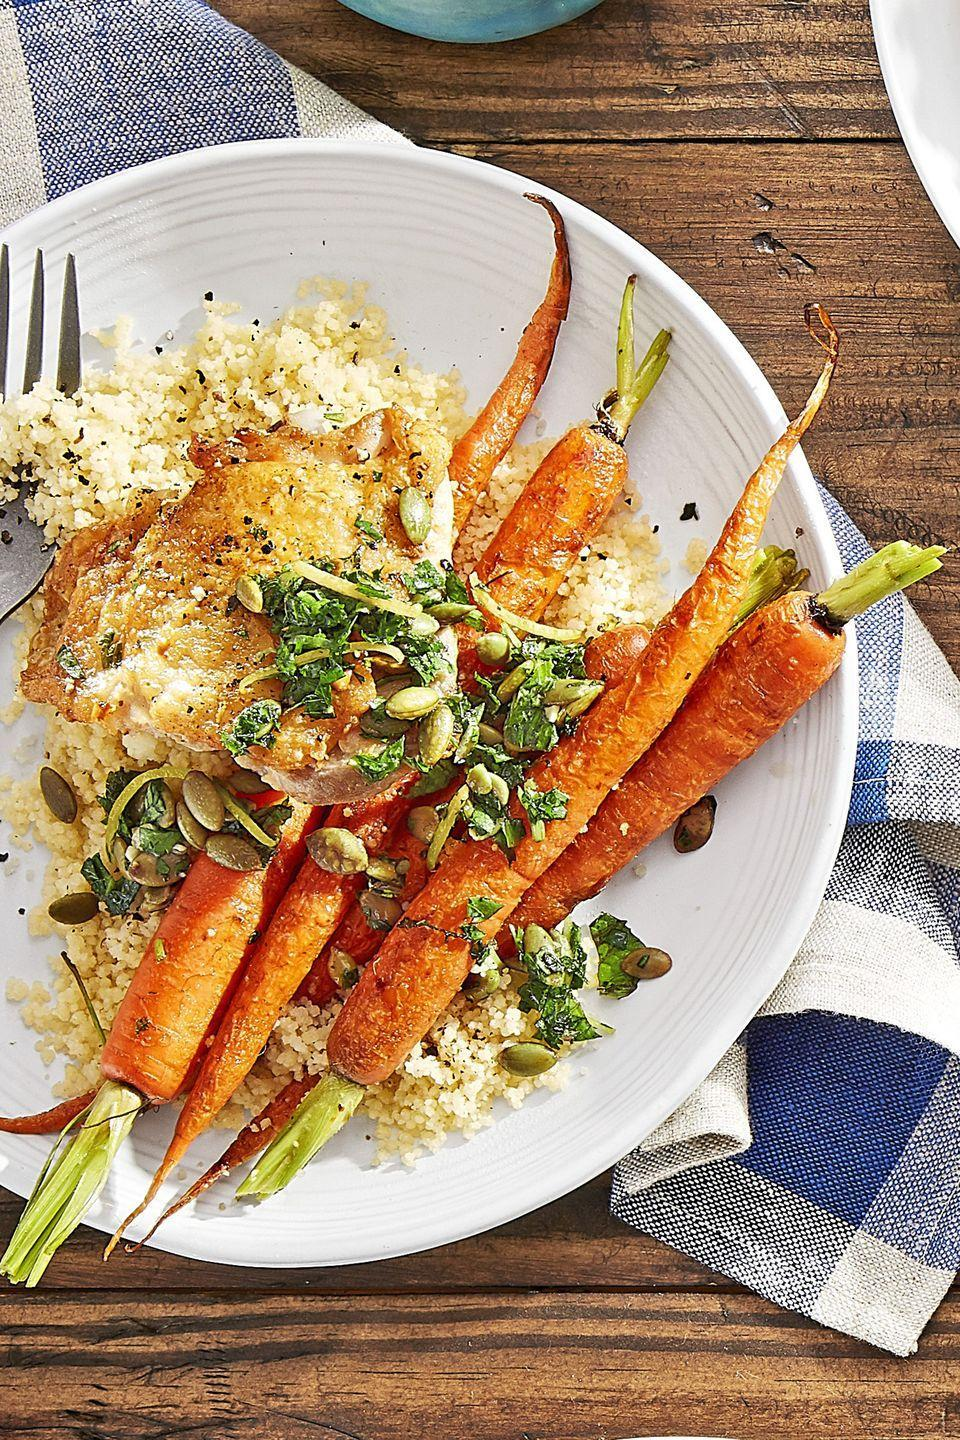 "<p>The secret to upgrading golden brown chicken thighs? Adding mint.</p><p><strong><a href=""https://www.countryliving.com/food-drinks/recipes/a44273/crispy-chicken-roasted-carrots-couscous-recipe/"" rel=""nofollow noopener"" target=""_blank"" data-ylk=""slk:Get the recipe"" class=""link rapid-noclick-resp"">Get the recipe</a>. </strong></p>"